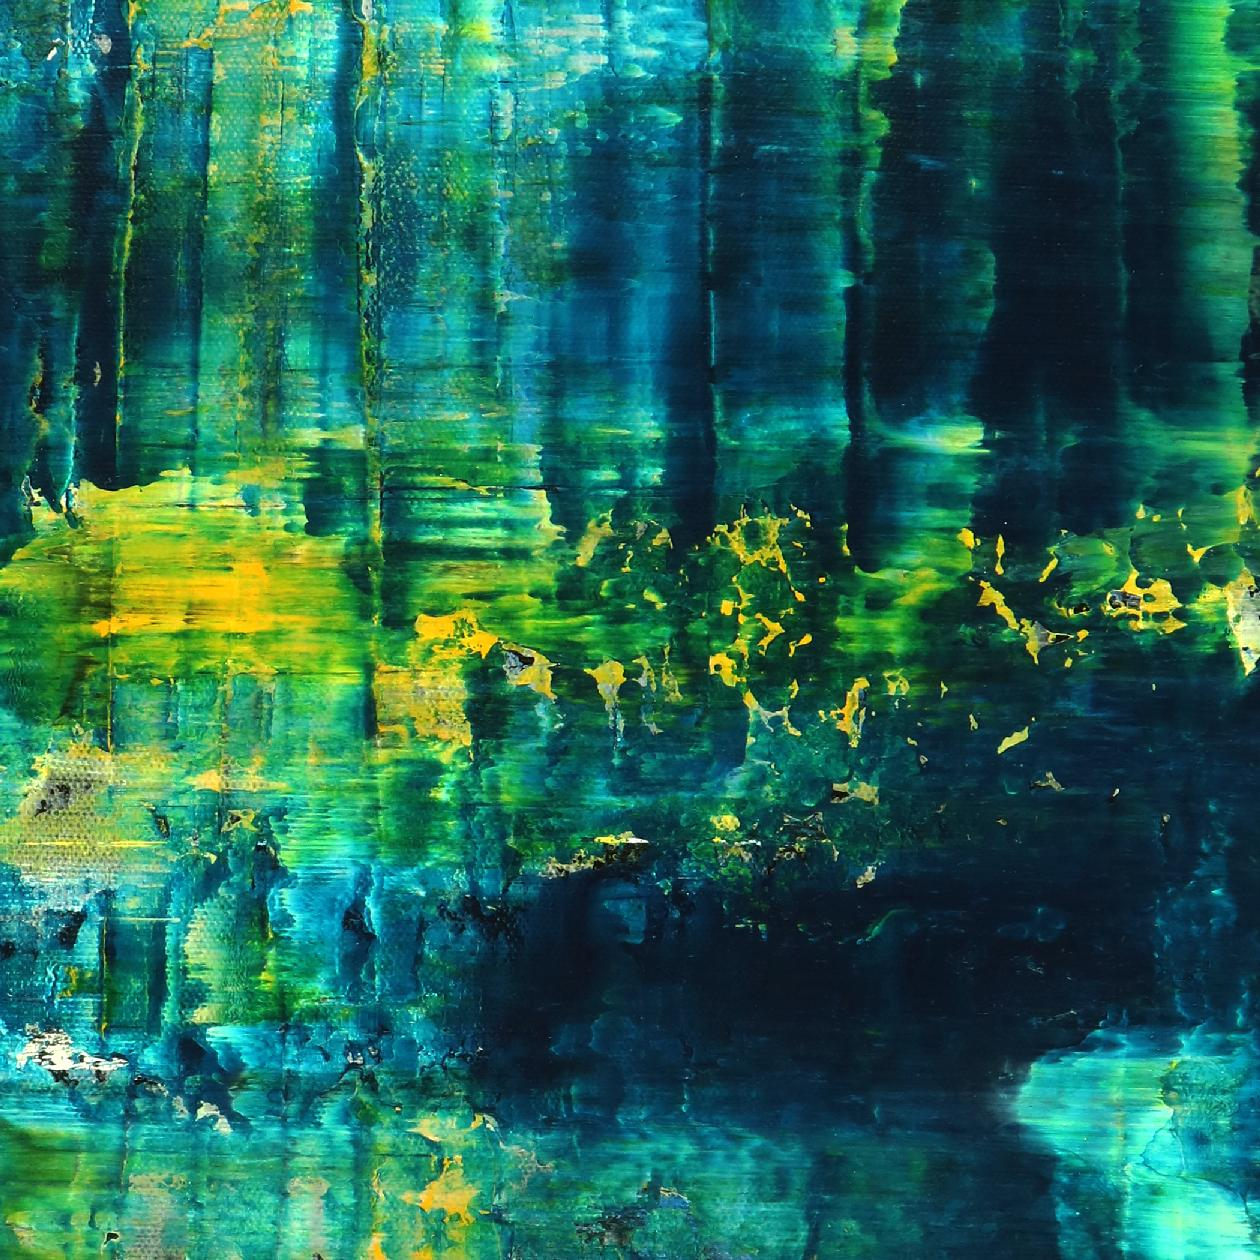 Detail - Emerald Forest Spectra 2 by Nestor Toro